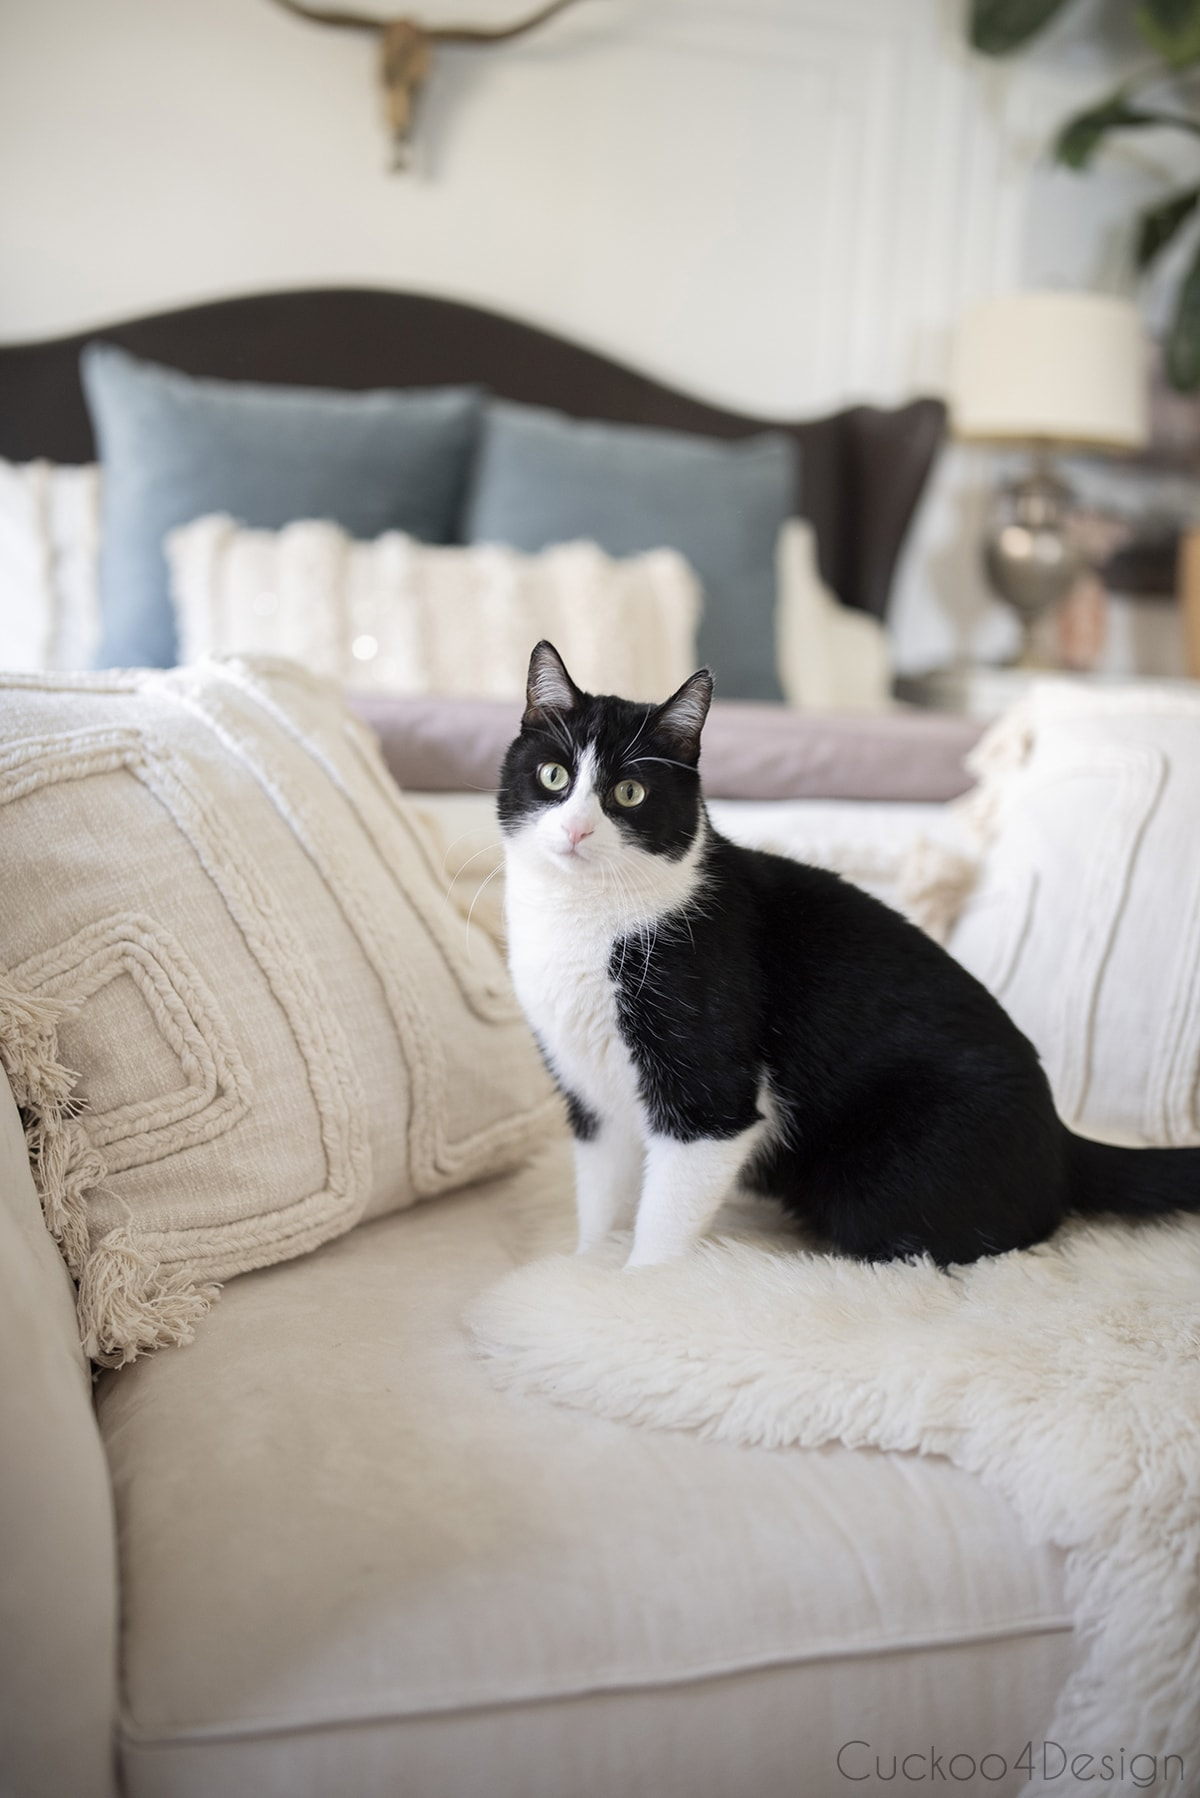 tuxedo cat sitting on bedroom chaise